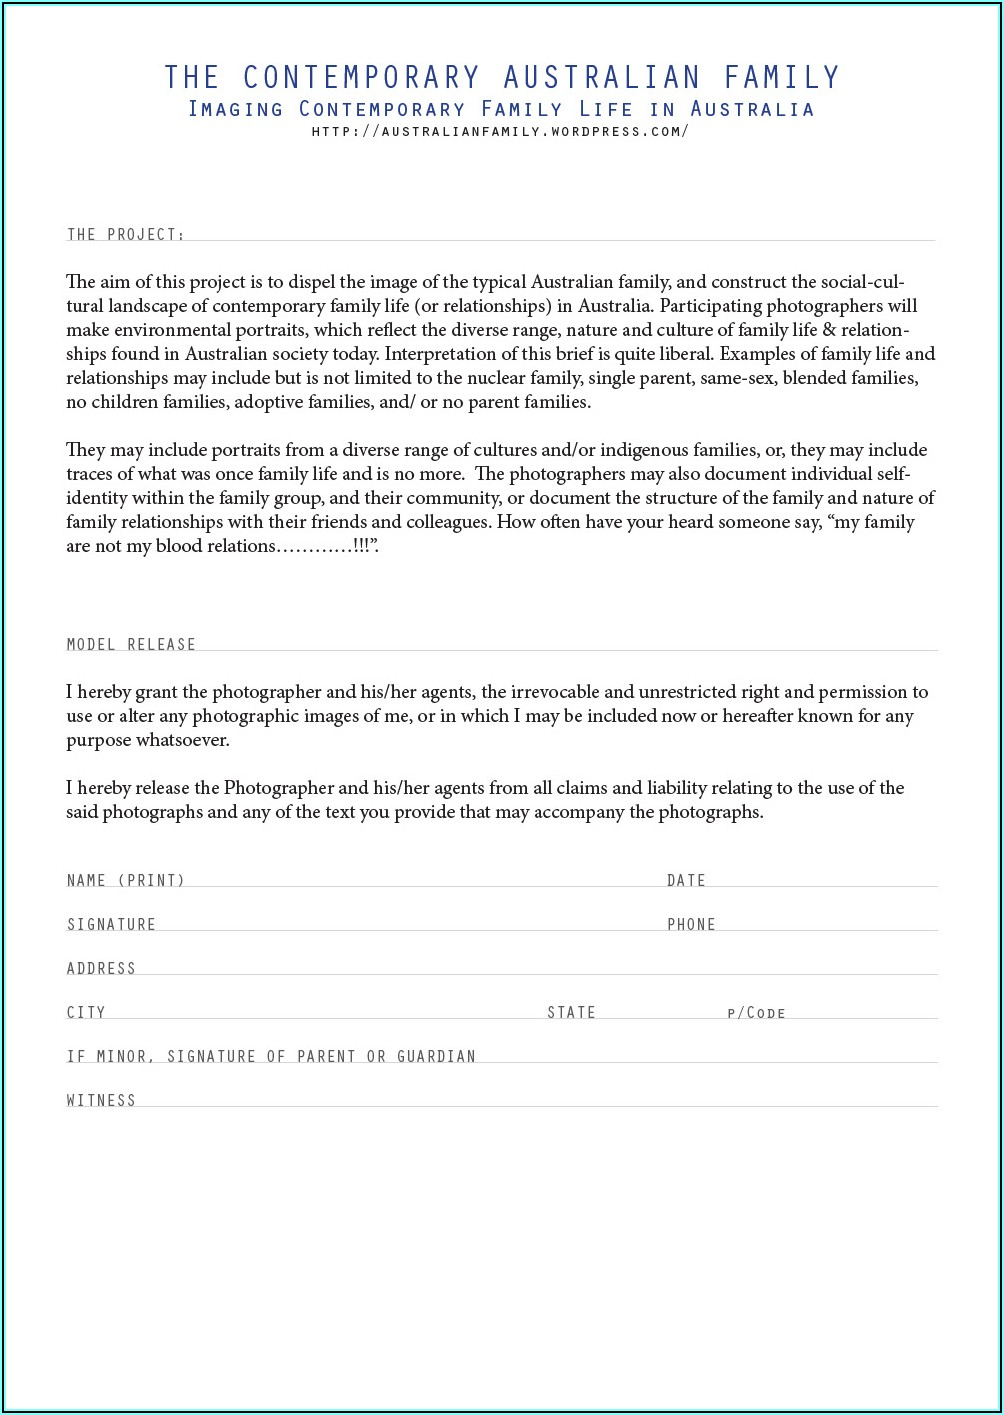 Photographer Model Release Form